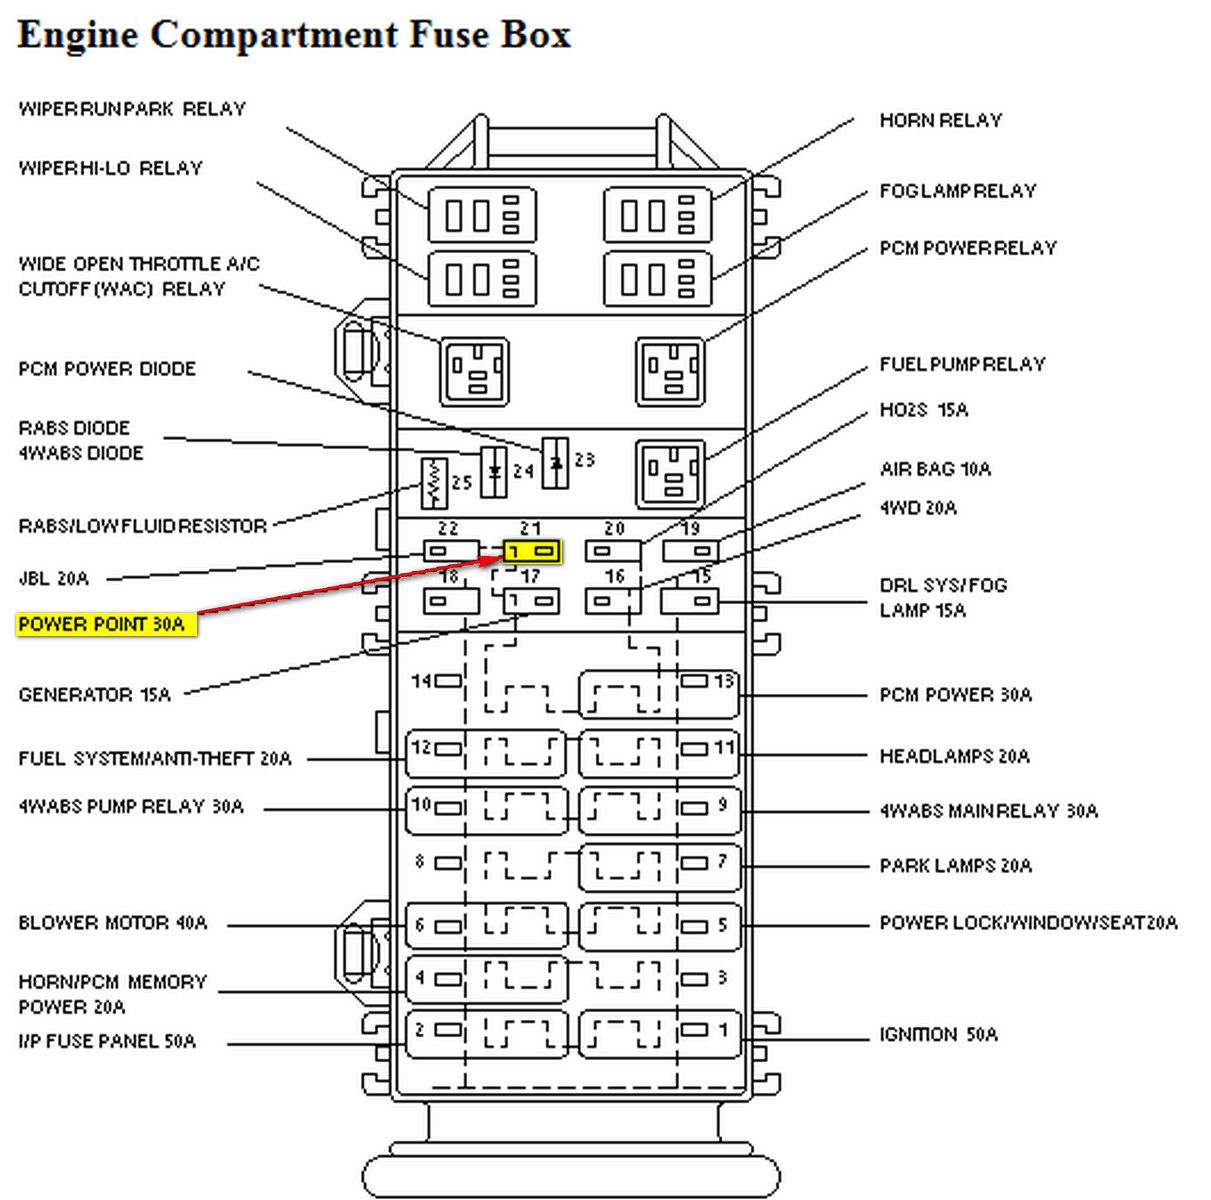 1997 mazda b2300 fuse box diagram - wiring diagram options craft-zip -  craft-zip.studiopyxis.it  pyxis